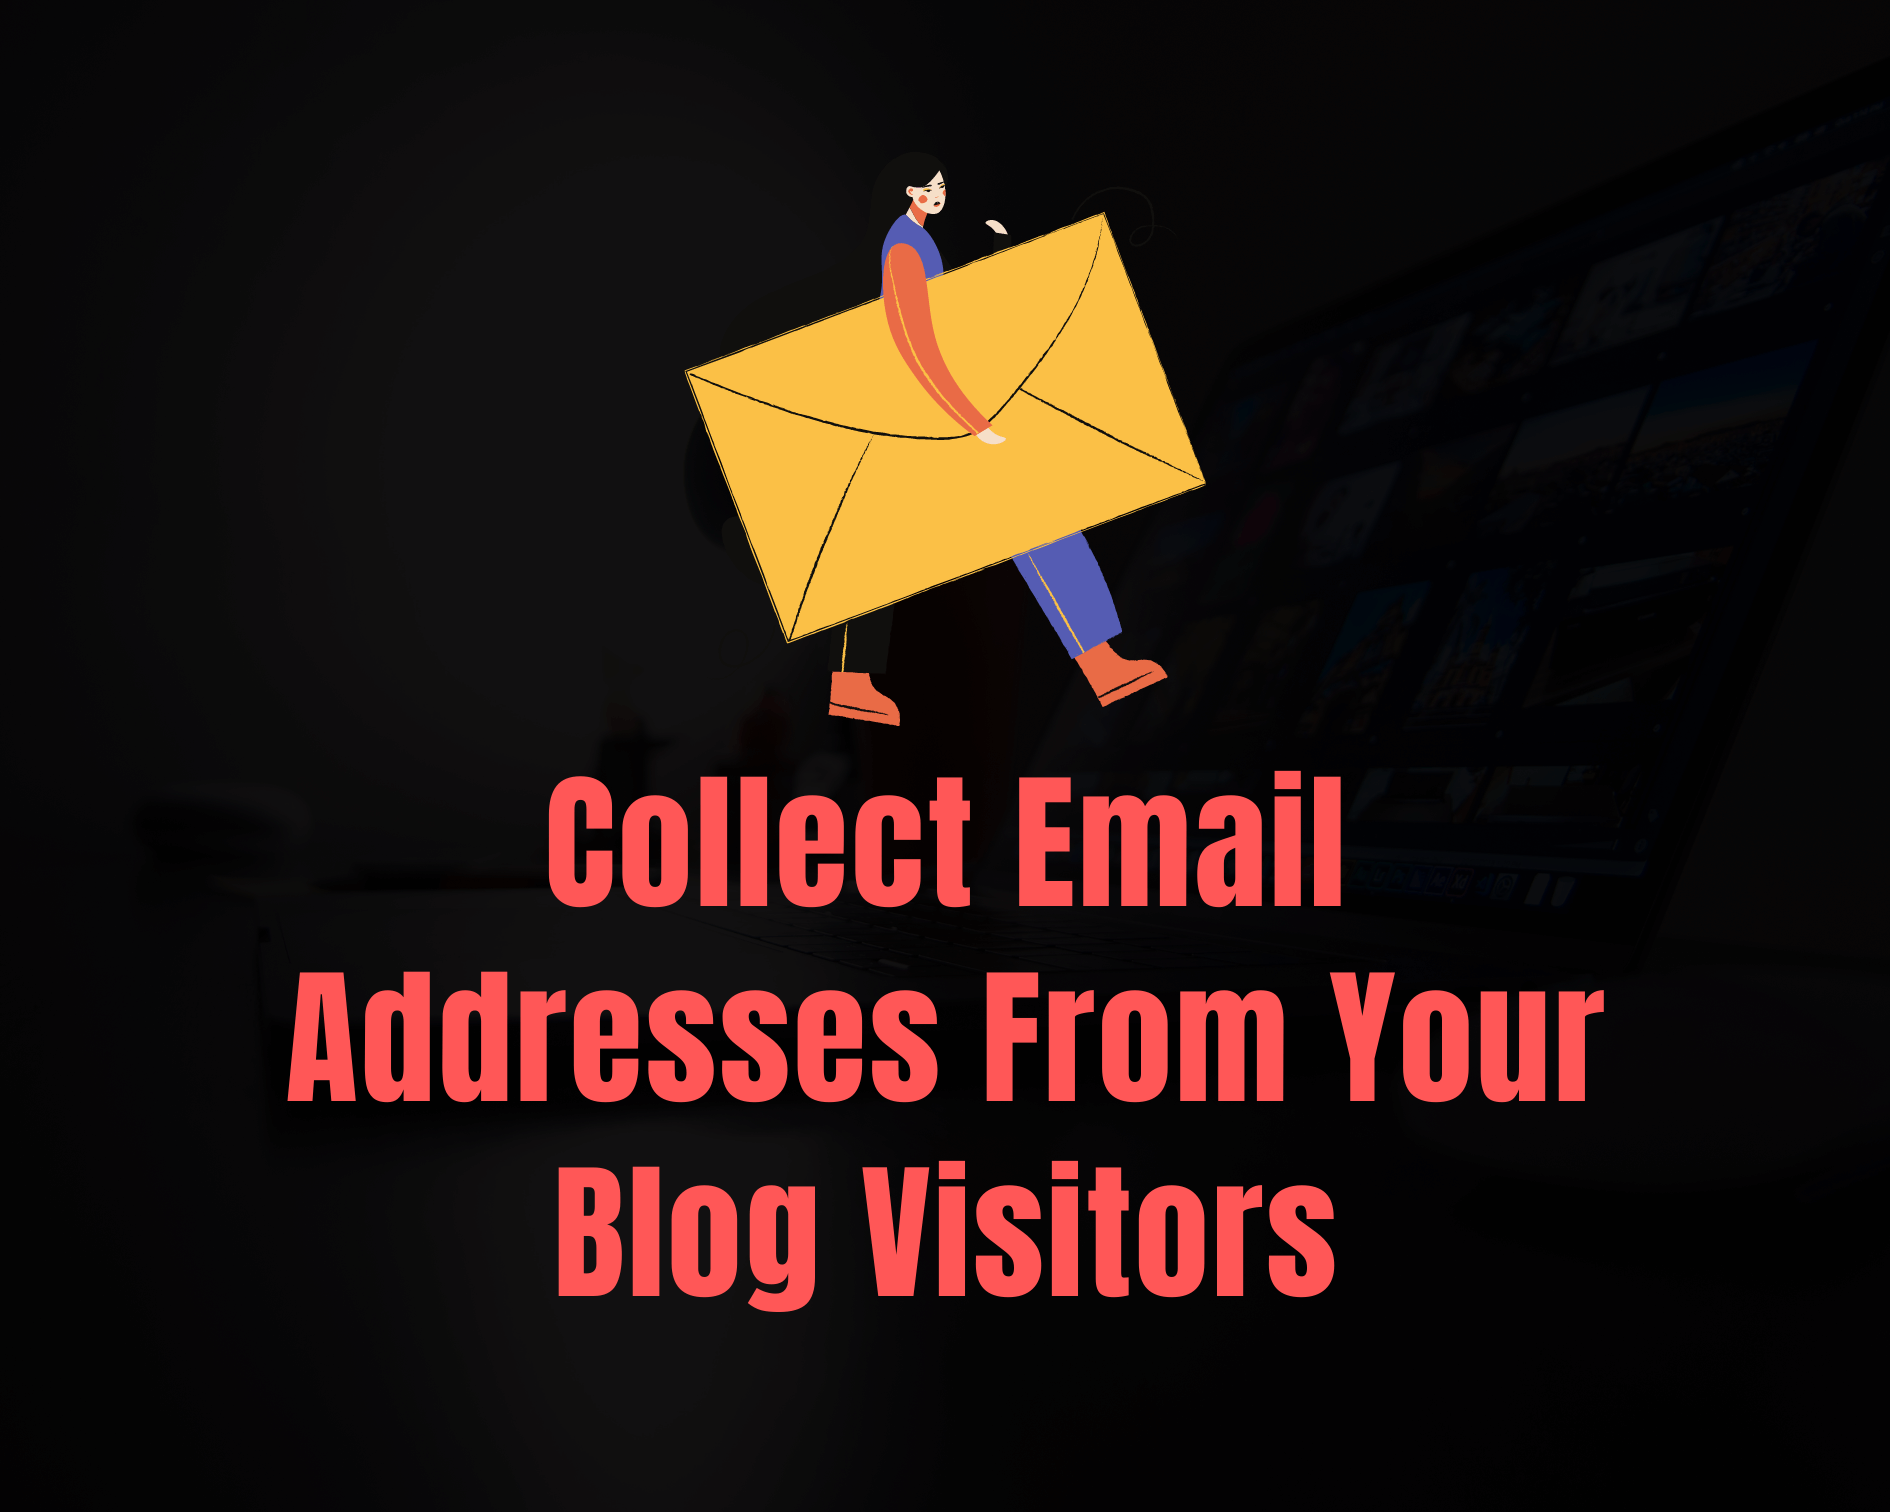 7 Easy Ways to Collect Email Addresses From Your Blog Visitors